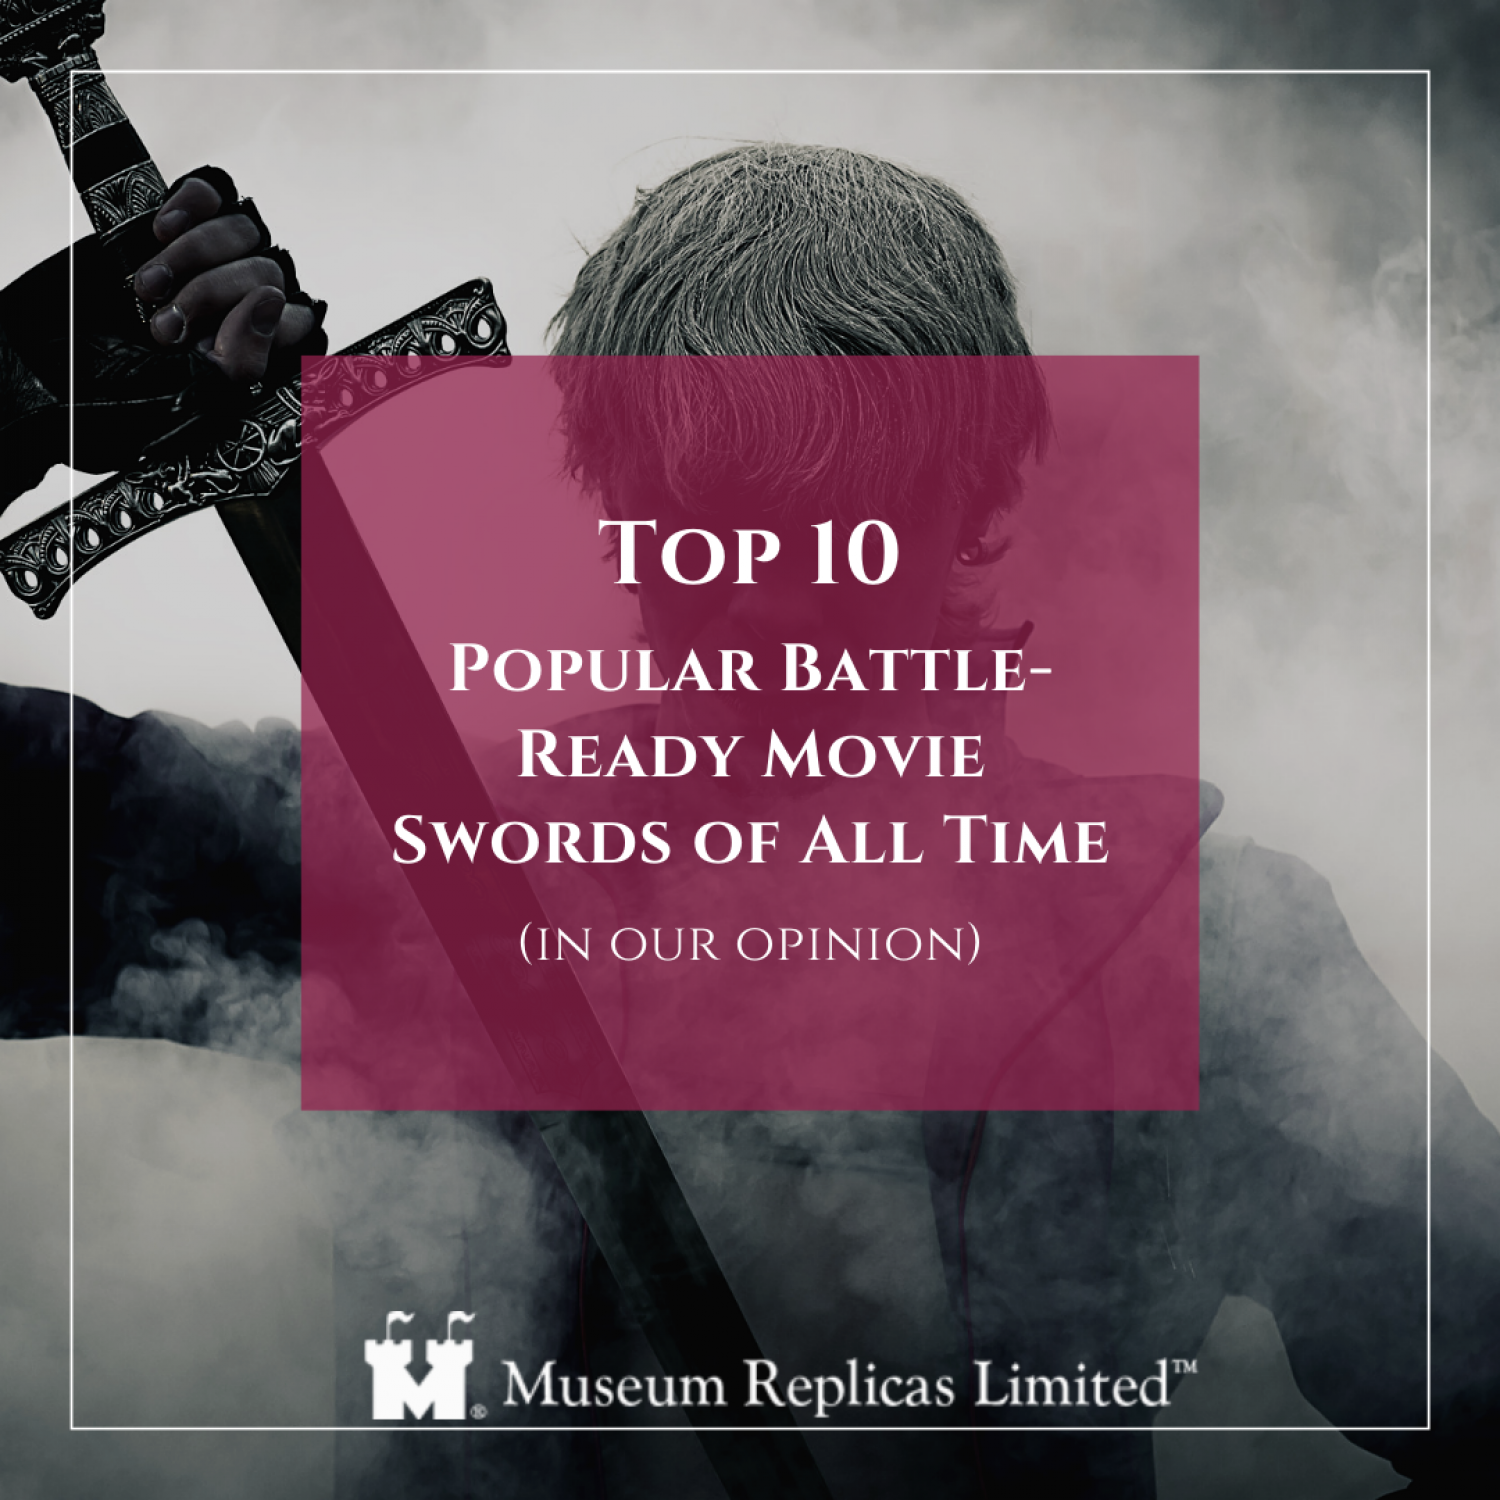 Top 10 Popular Battle-Ready Movie Swords of All Time Infographic